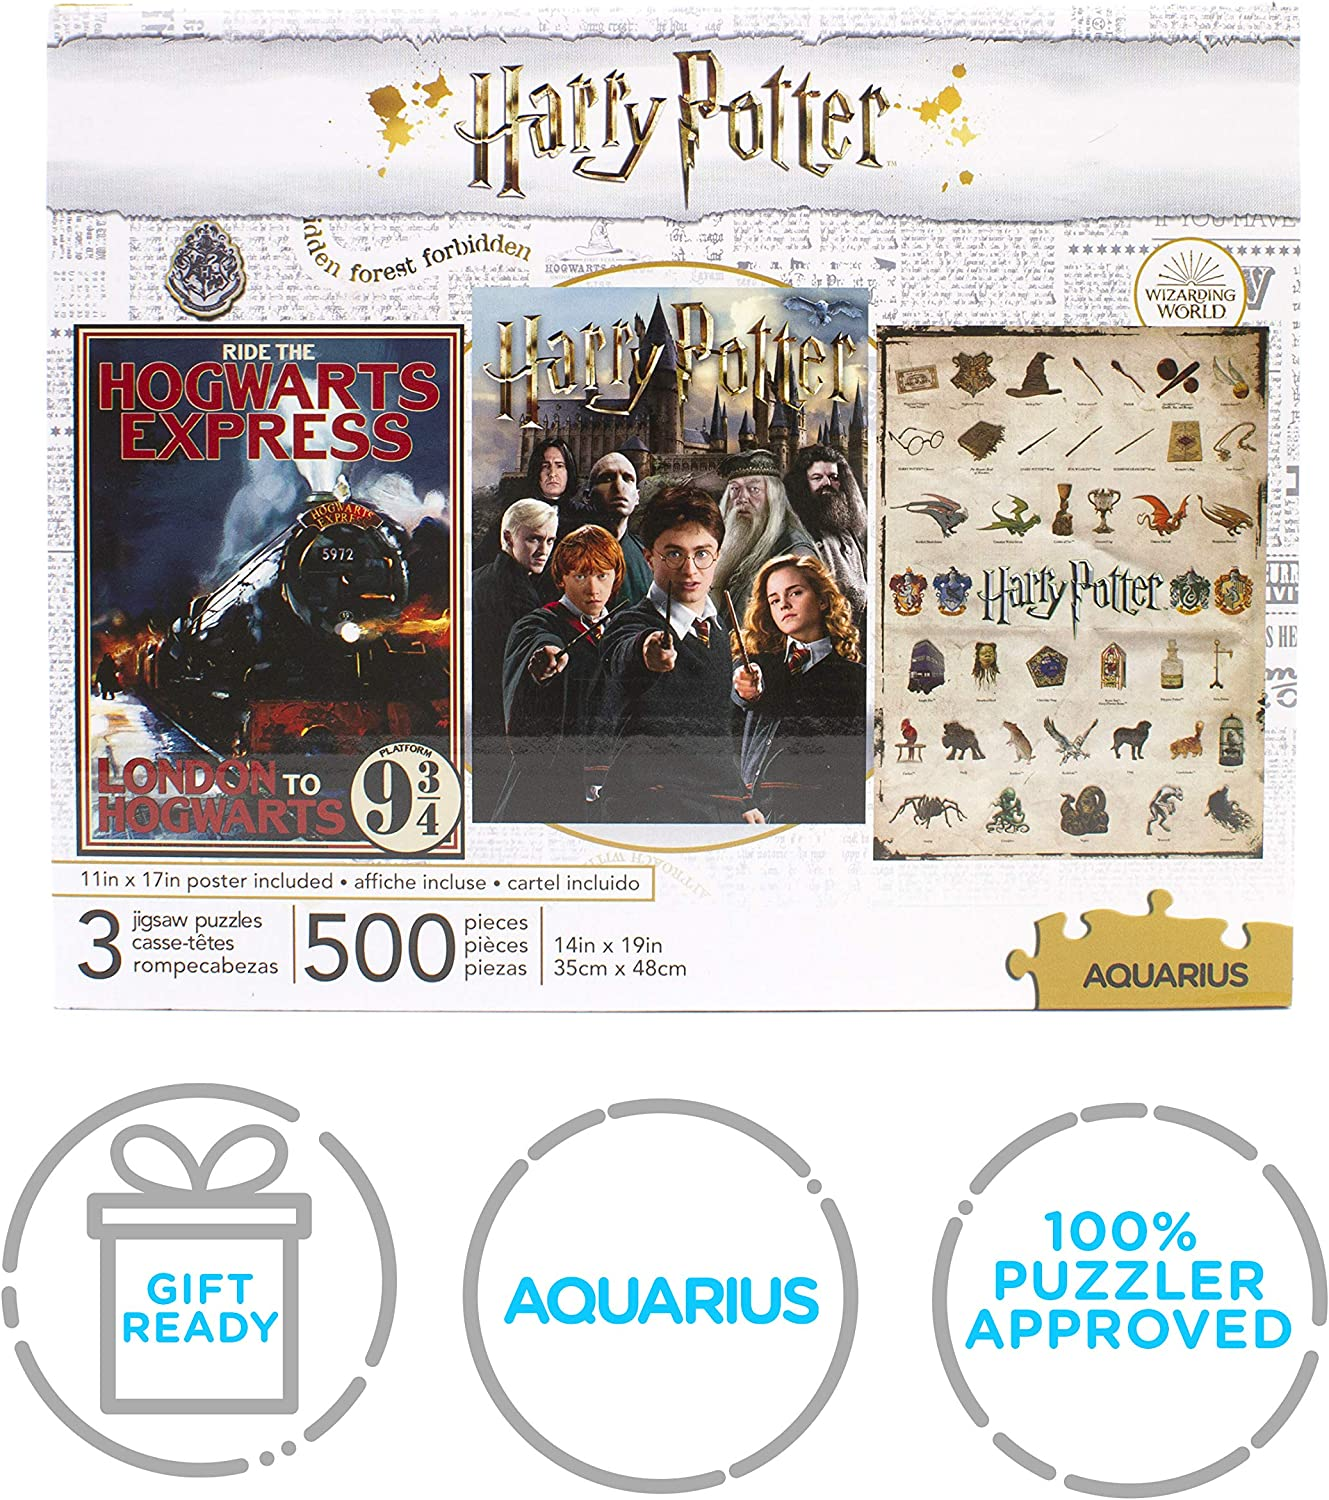 14x19 Inches Each - Glare Free Officially Licensed HP Merchandise /& Collectibles Precision Fit Three 500 Piece Jigsaw Puzzles Virtually No Puzzle Dust AQUARIUS Set of 3 Harry Potter Puzzles